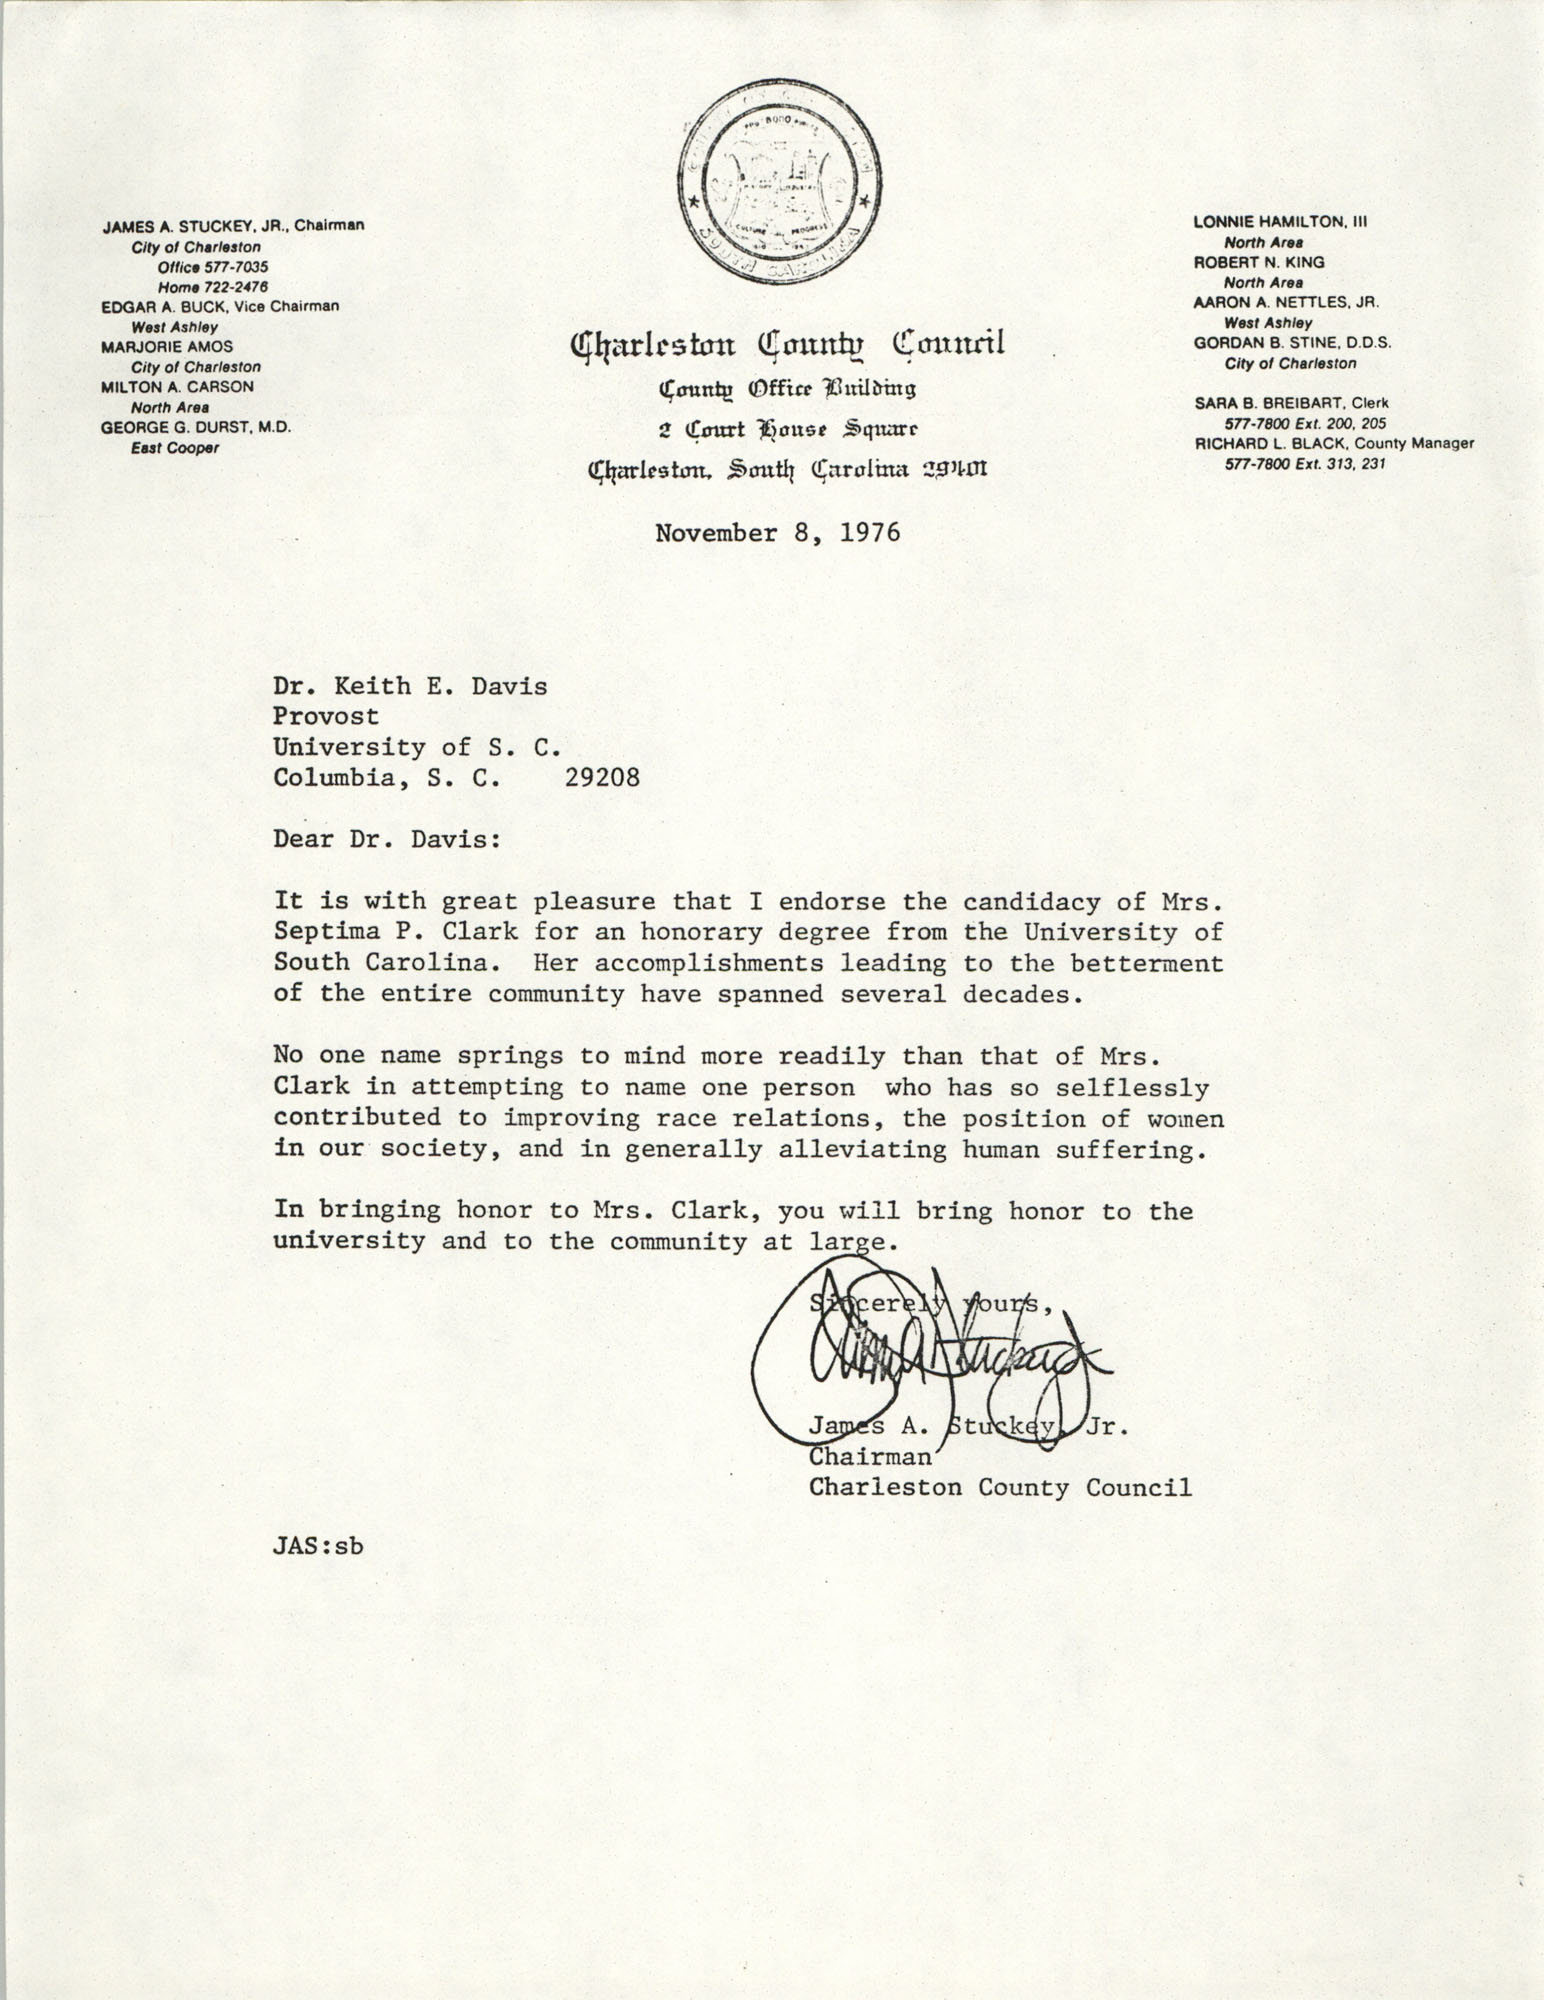 Letter from James A. Stuckey, Jr. to Keith E. Davis, November 8, 1976